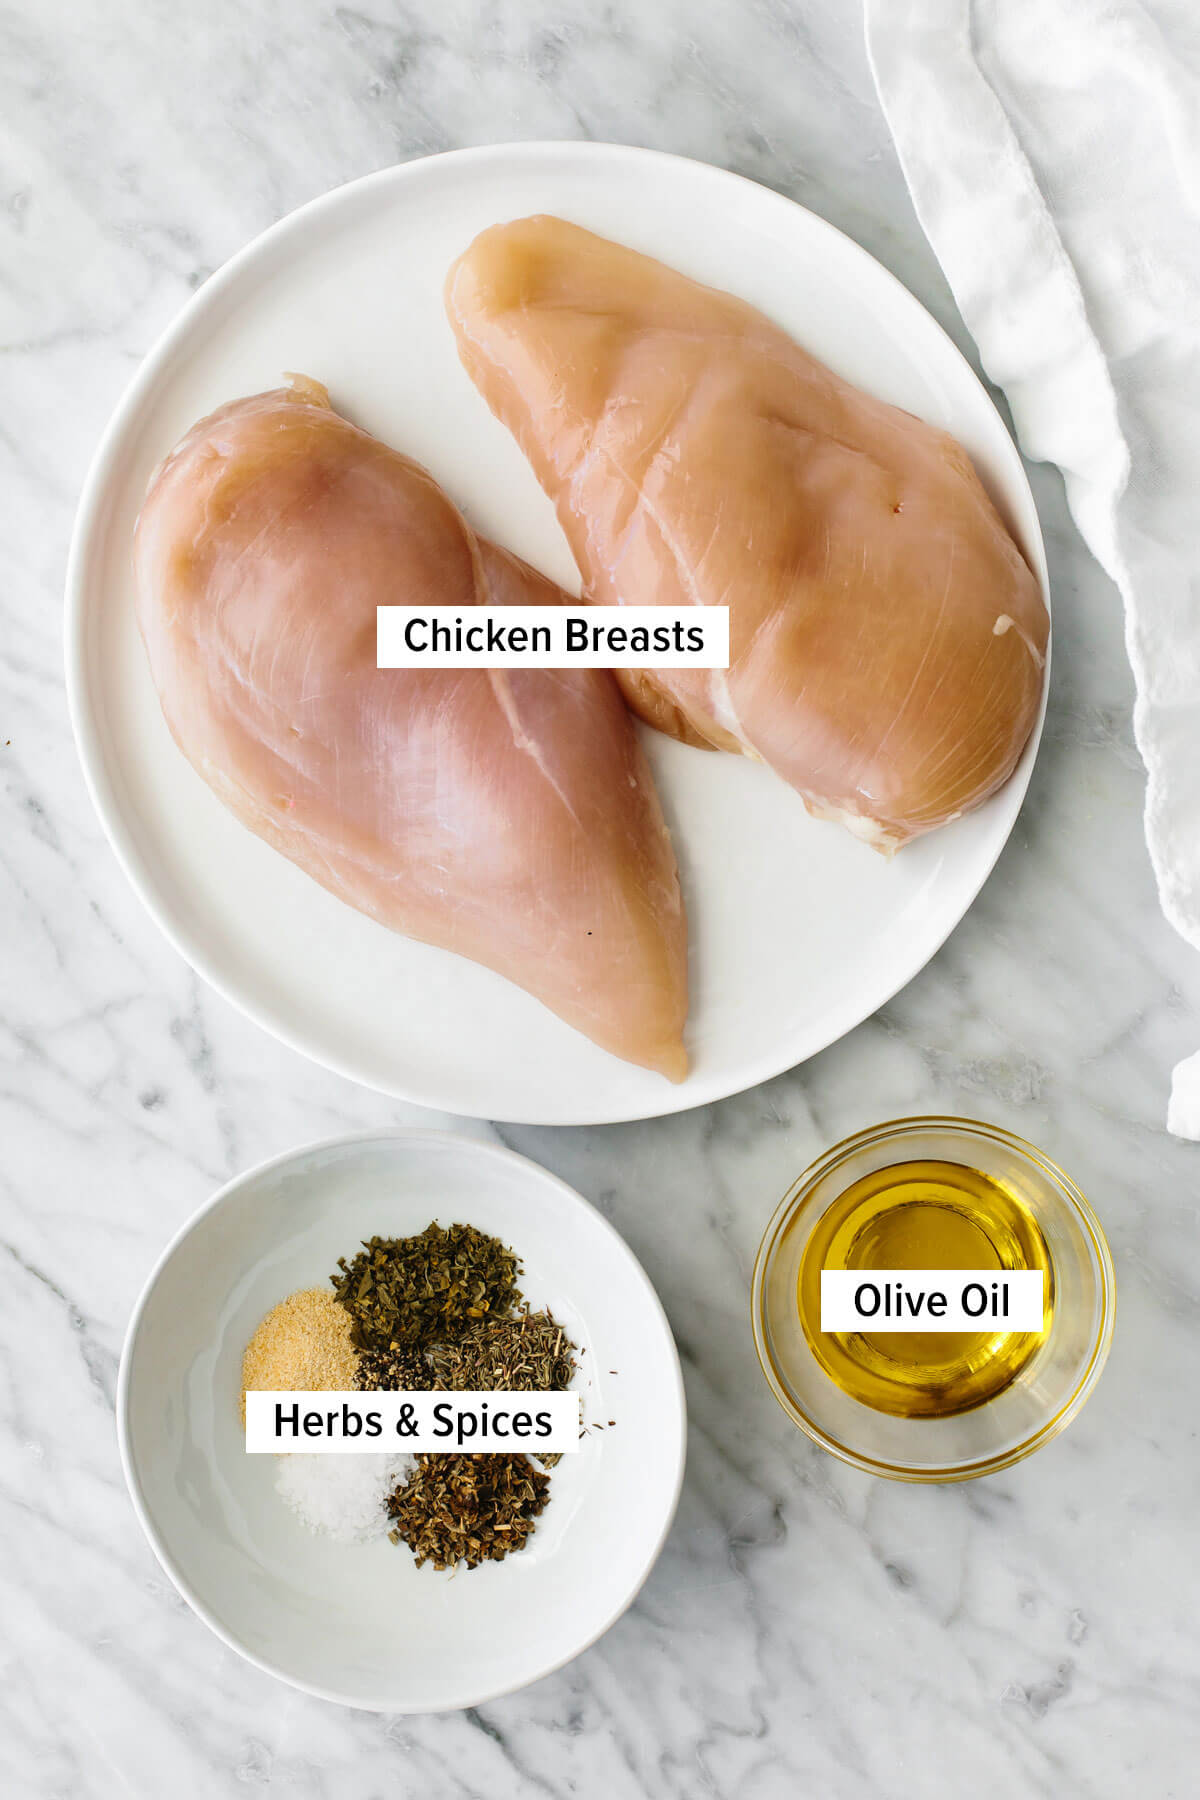 Ingredients for herb baked chicken on a table.